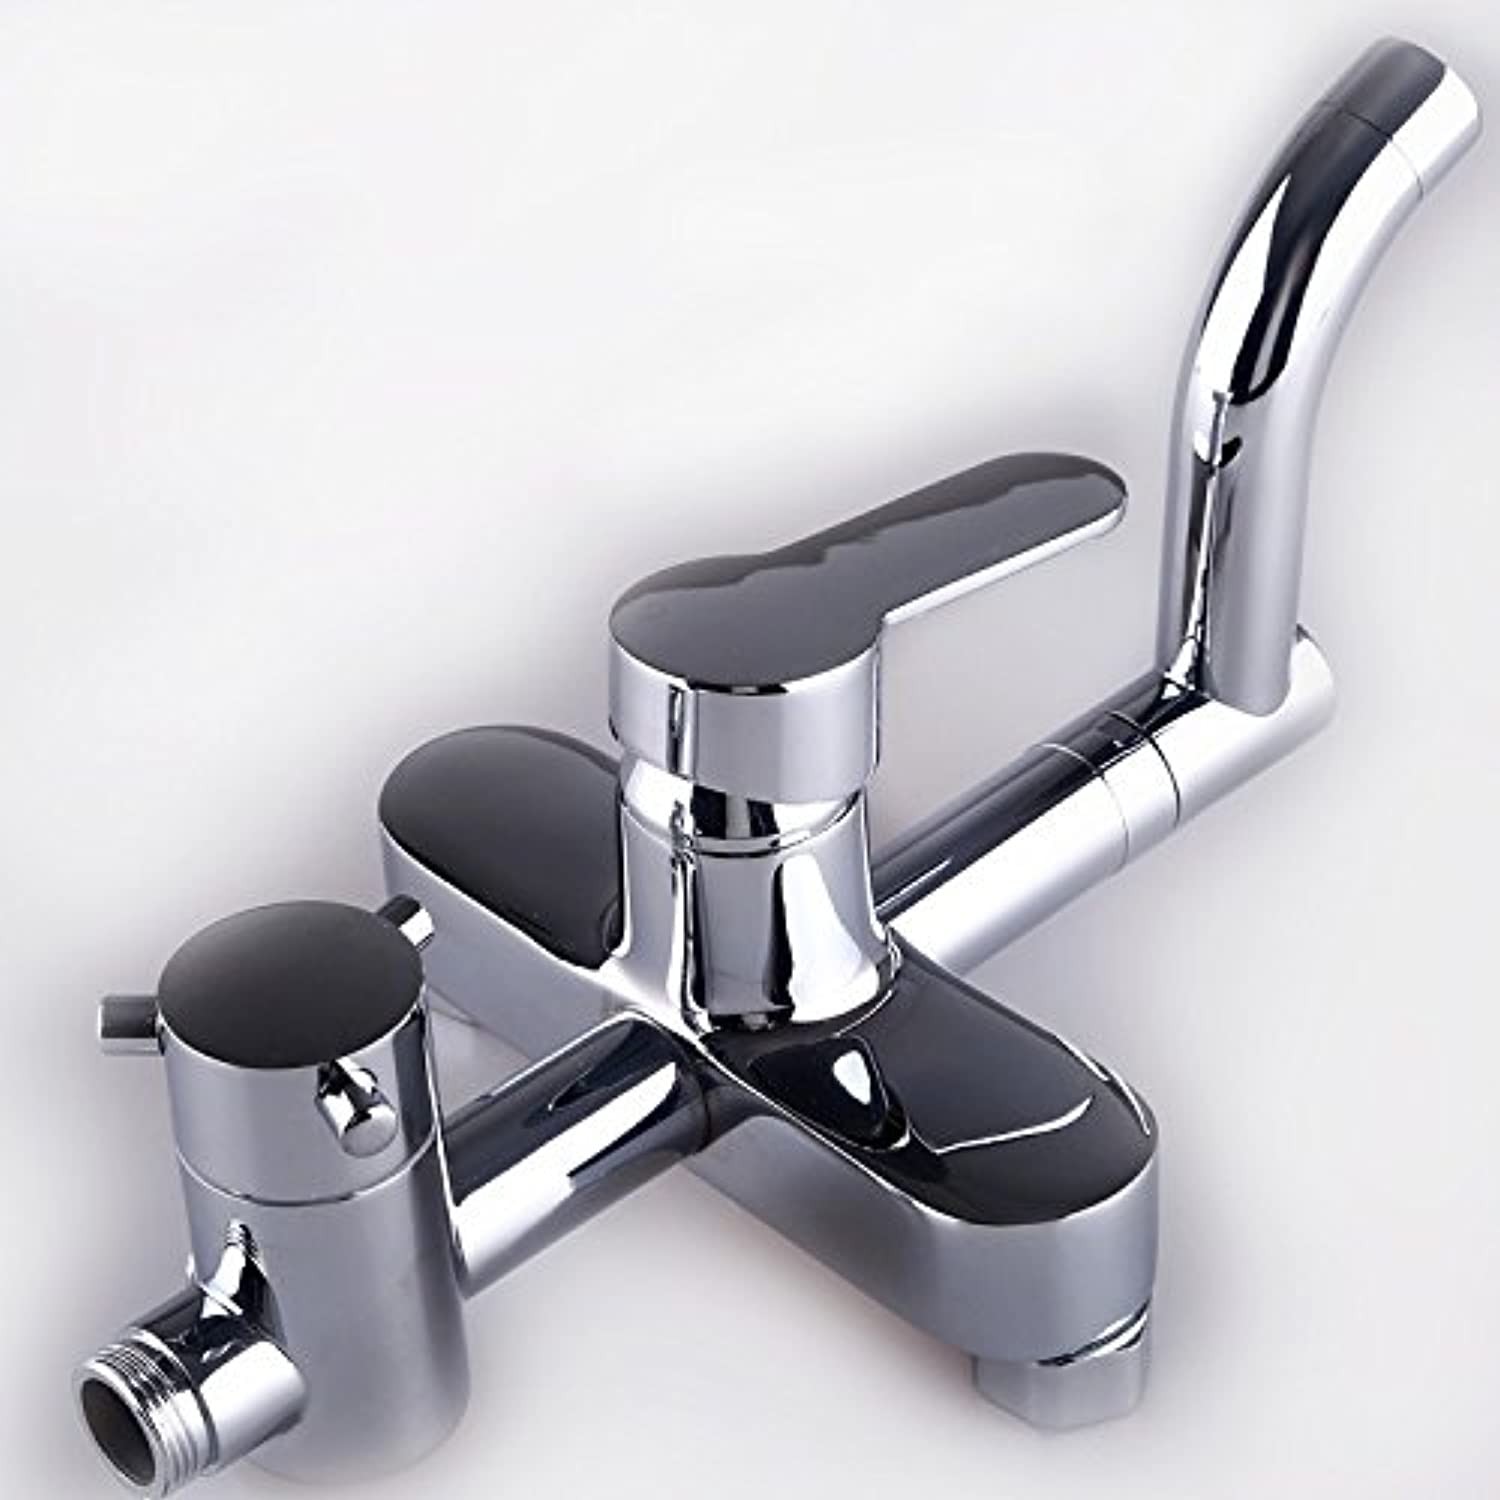 Hlluya Professional Sink Mixer Tap Kitchen Faucet Shower faucets, water heating full copper shower faucet third gear hot and cold mix of qualified